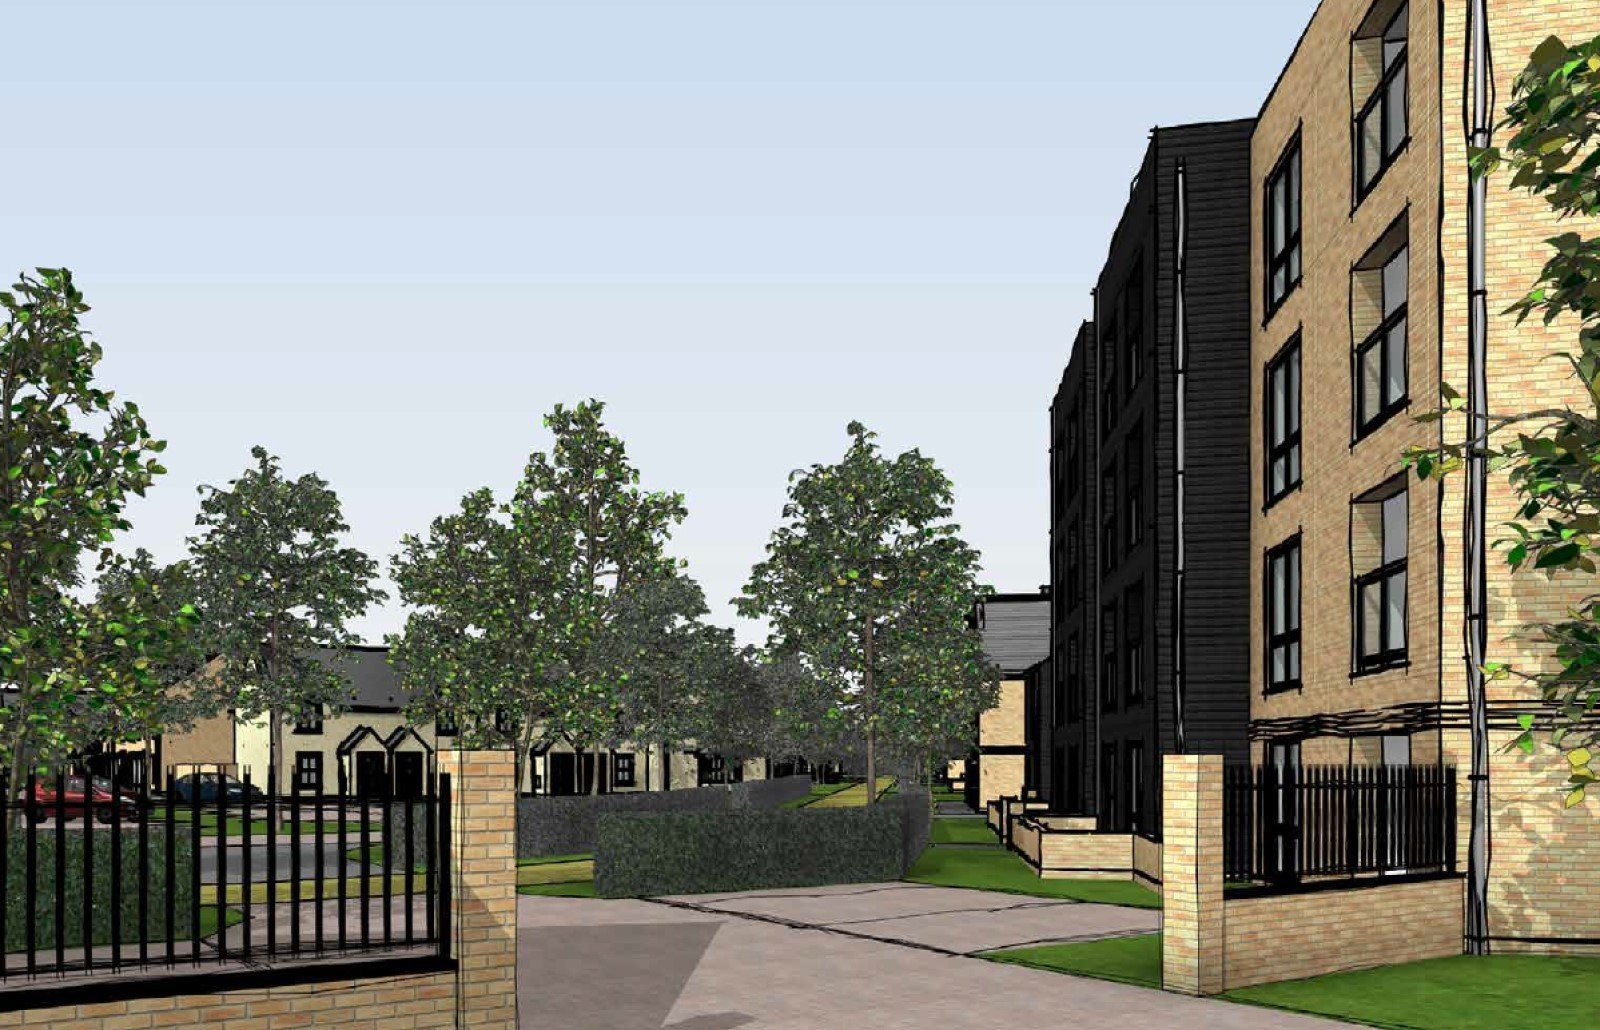 Proposed development at Hill View Farm in Old Marston, Oxford.